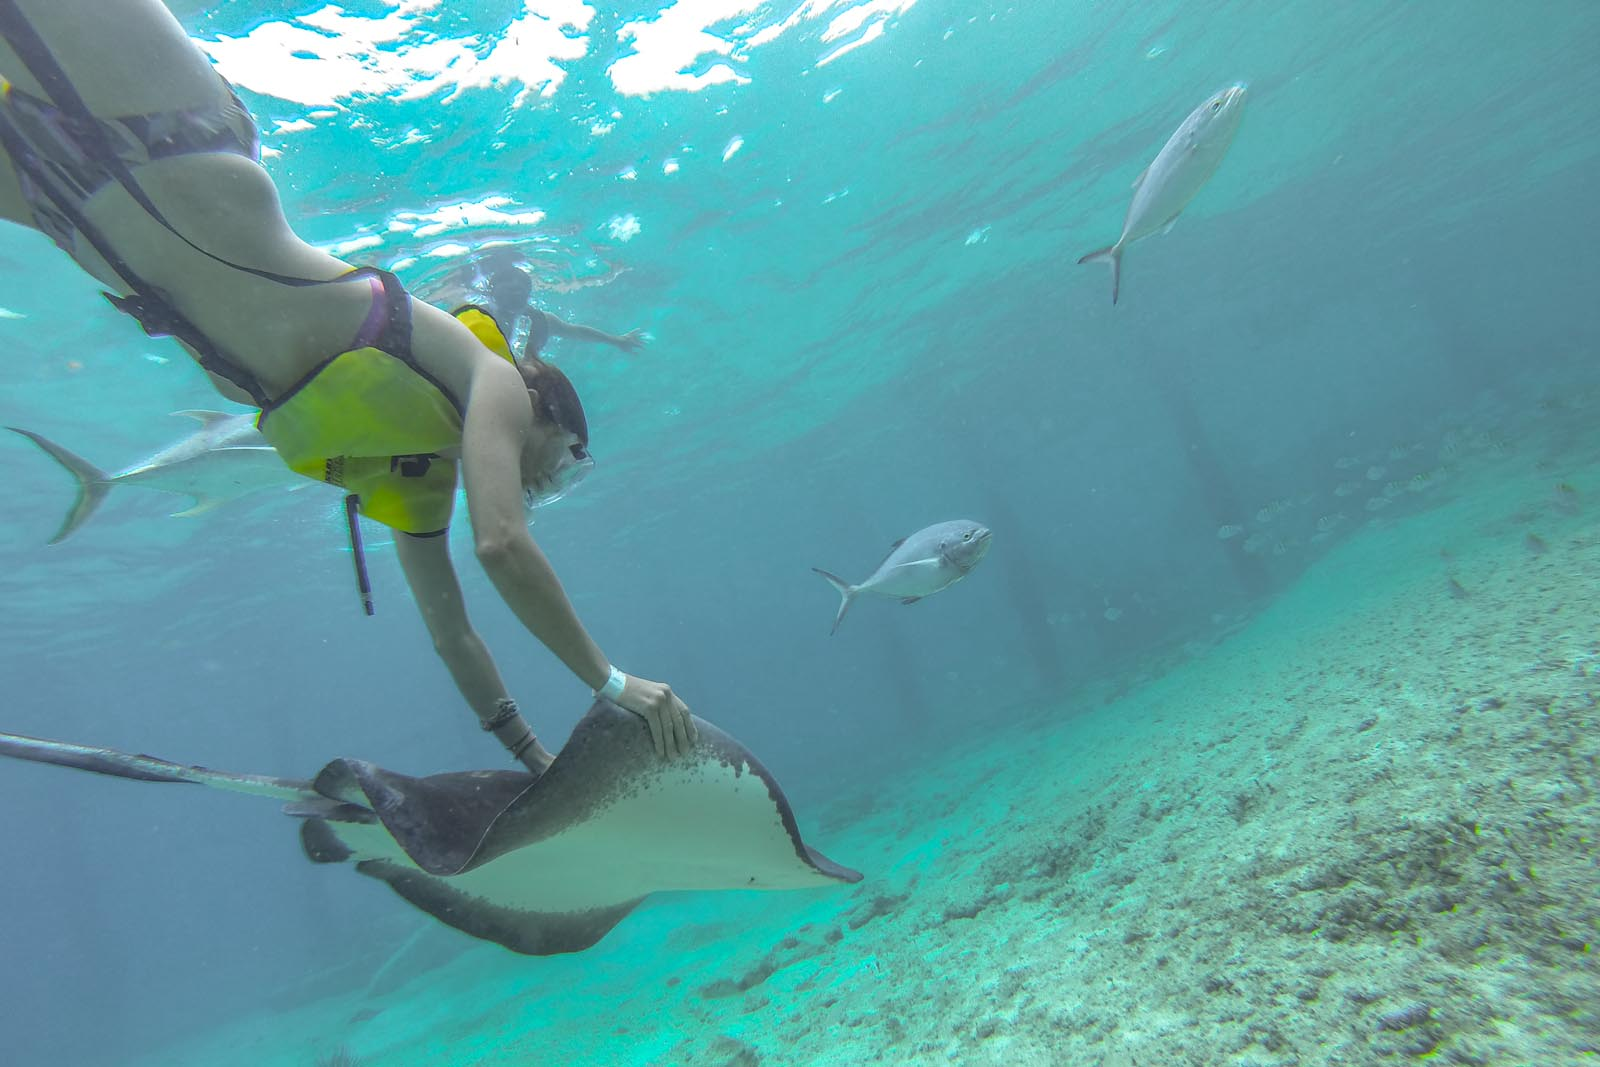 Grab and go stingrays. Not a wild one obviously, but at the Everybody Loves Rays, stingray encounter on Cozumel.